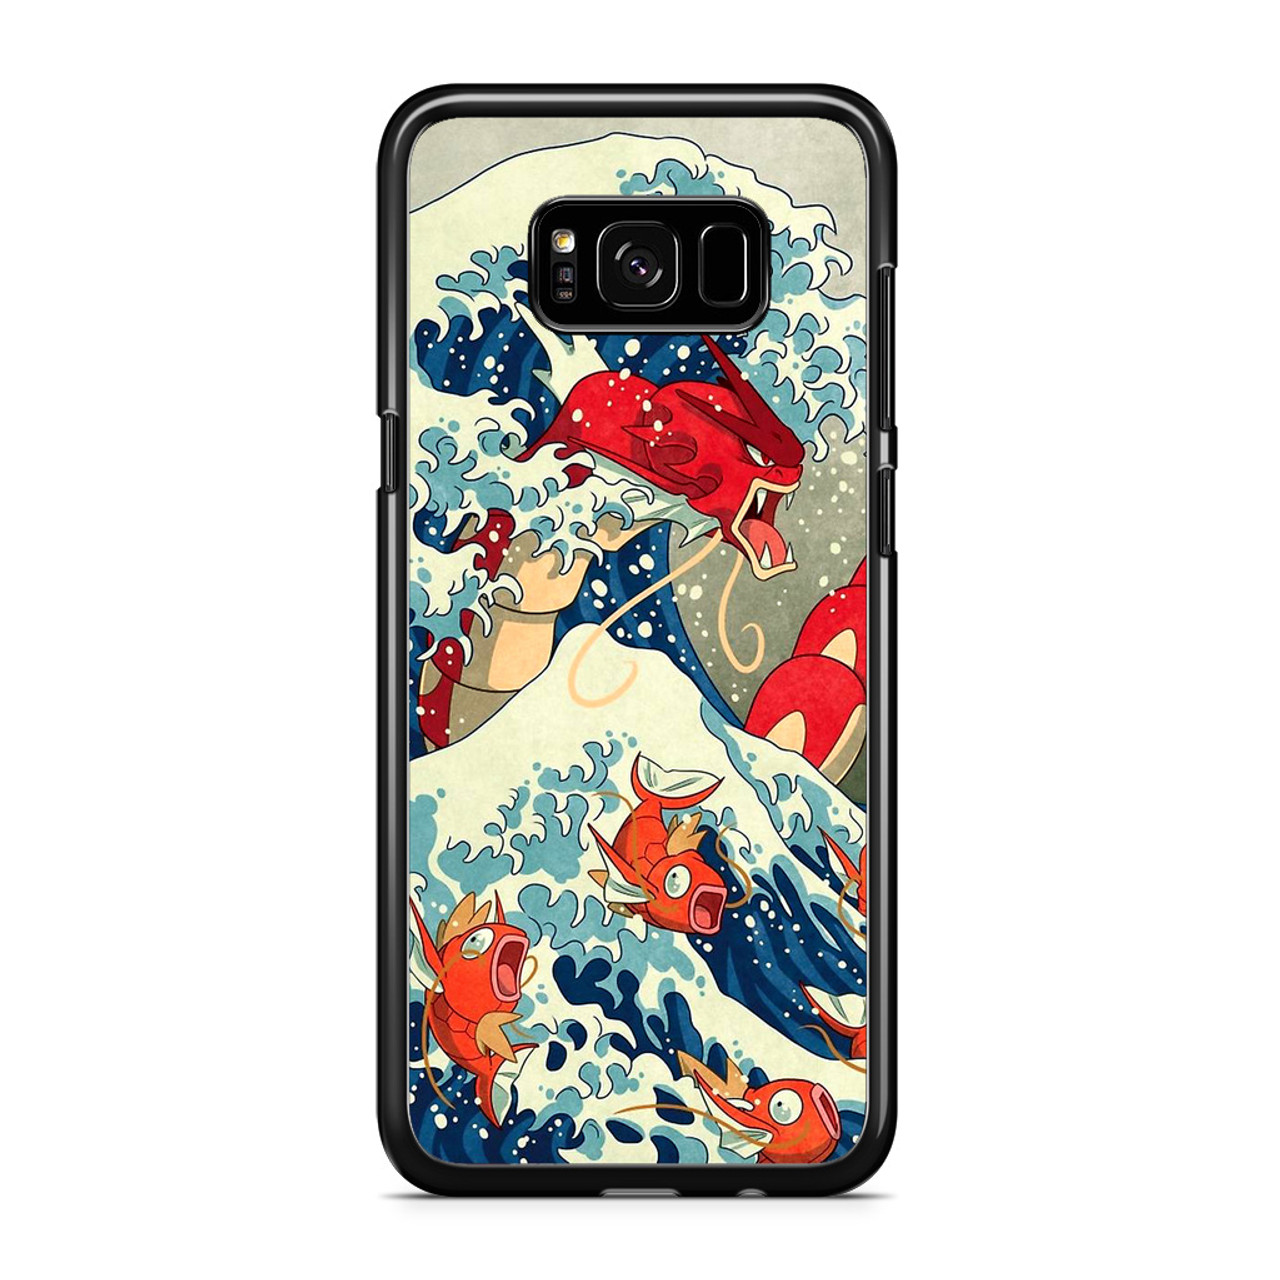 the great wave of kanto pokemon samsung galaxy s8 plus case